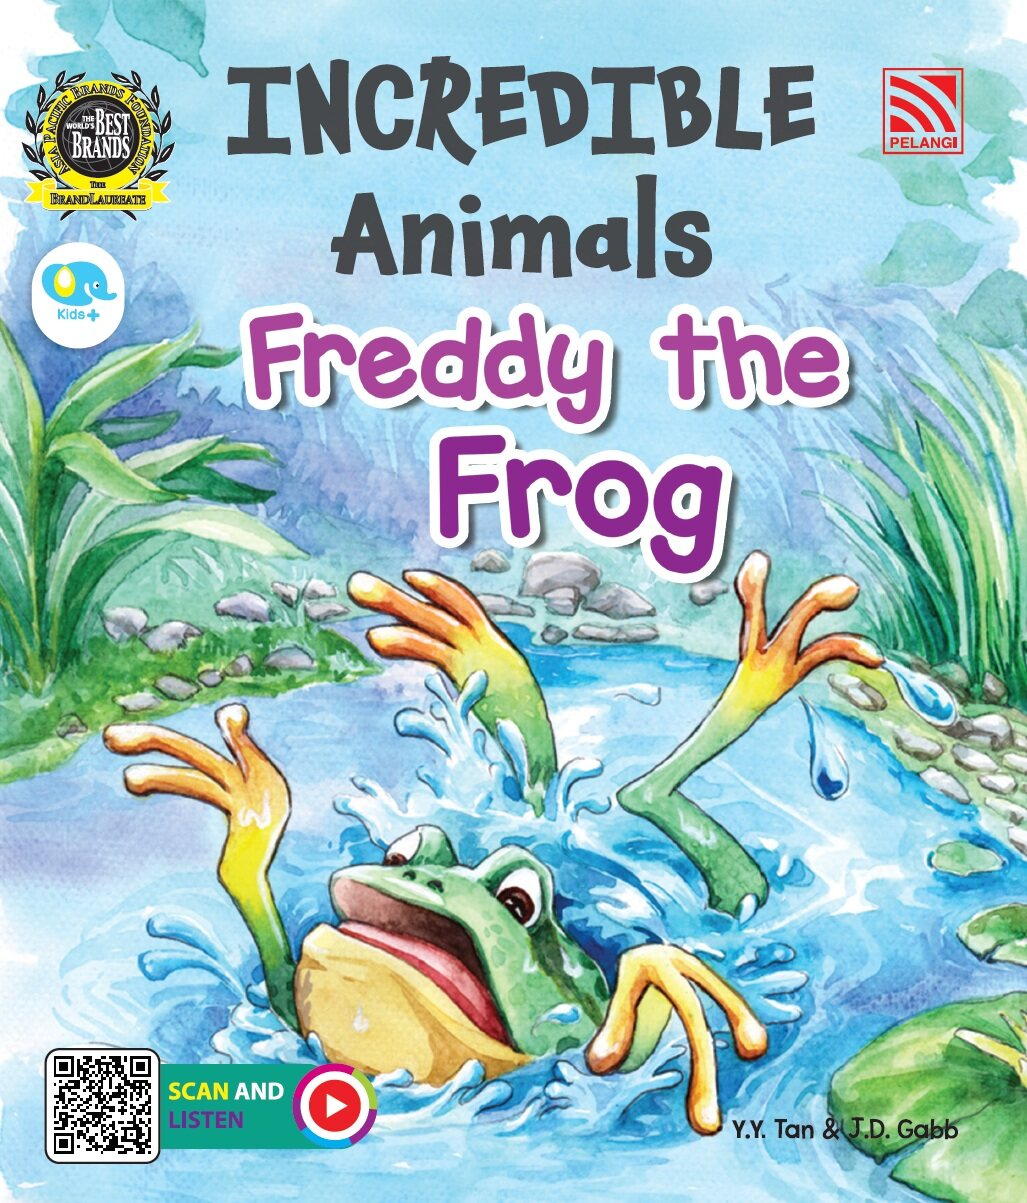 Pelangibooks Storybook Incredible Animals - Freddy The Frog